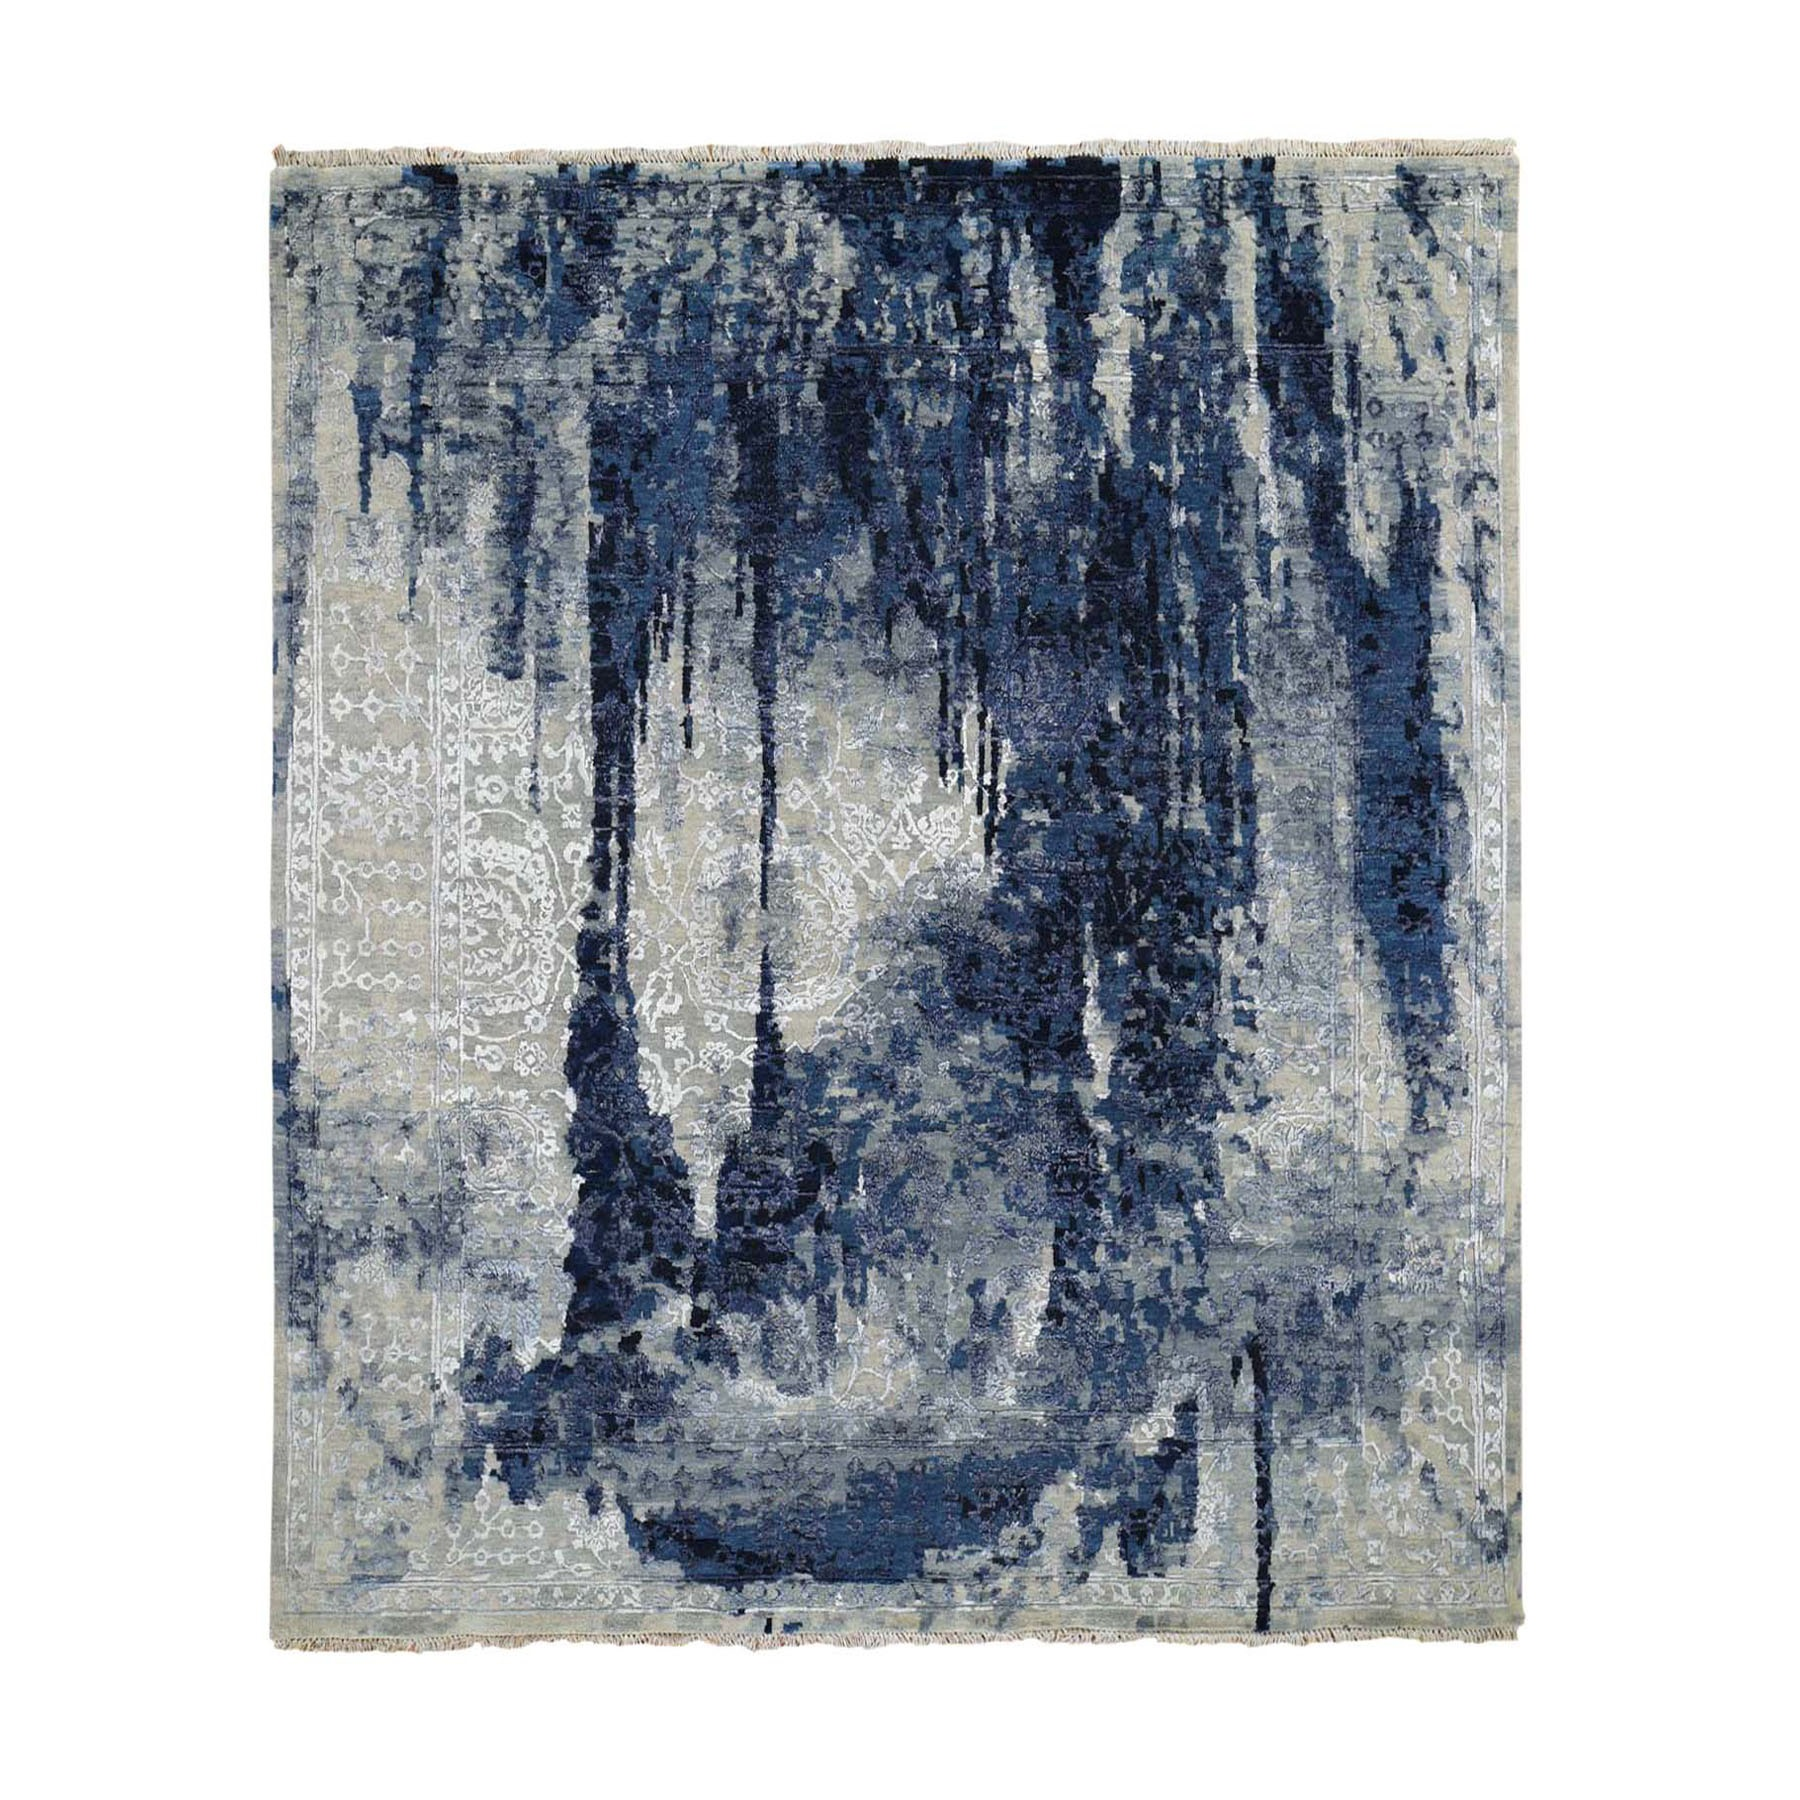 10'X10' Square Wool And Silk Shibori Design Tone On Tone Hand Knotted Oriental Rug moad8bcd